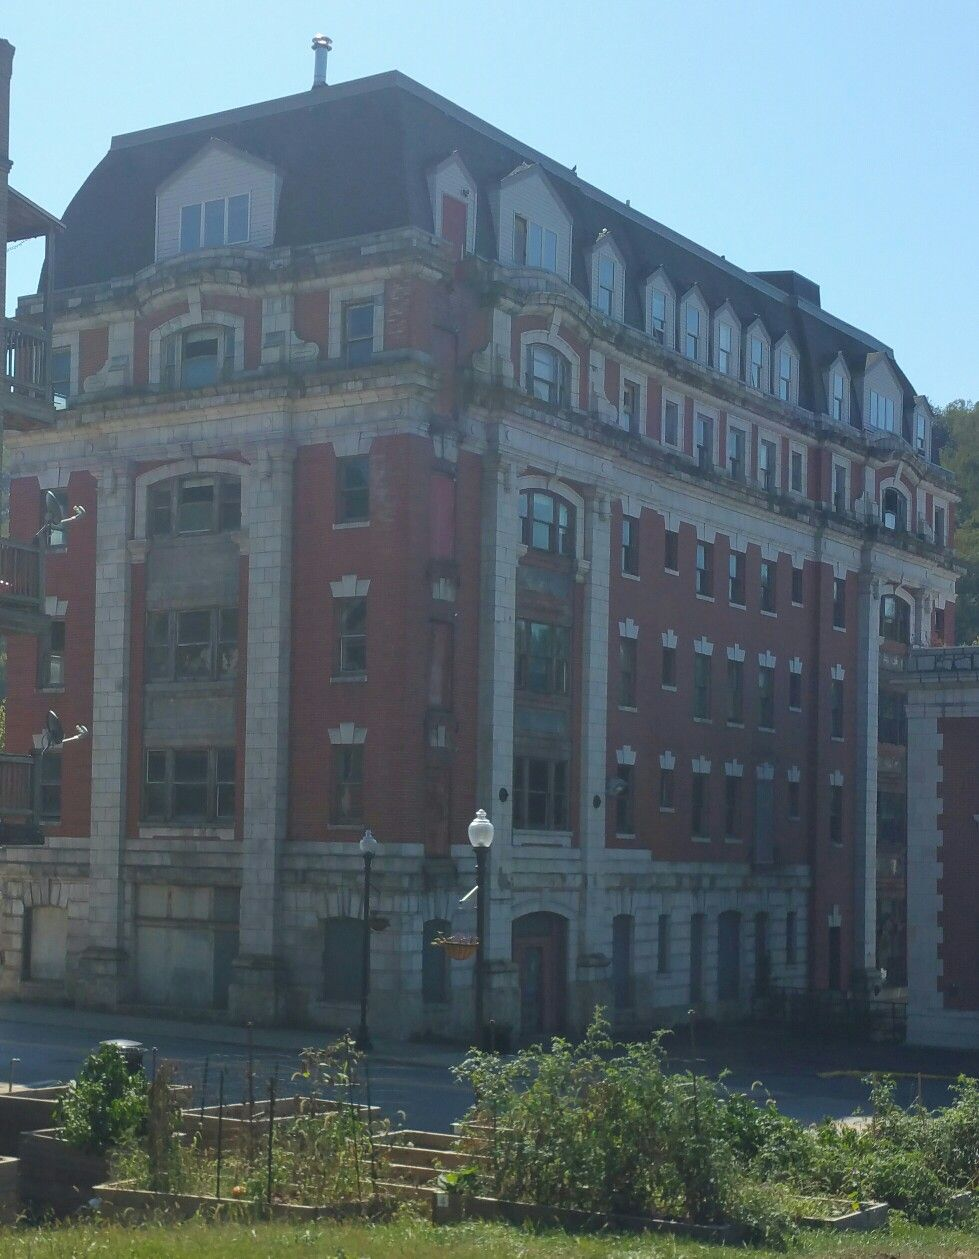 Grafton Wv 1911 Abandoned Willard Hotel It Is Gorgeous Can Only Imagine